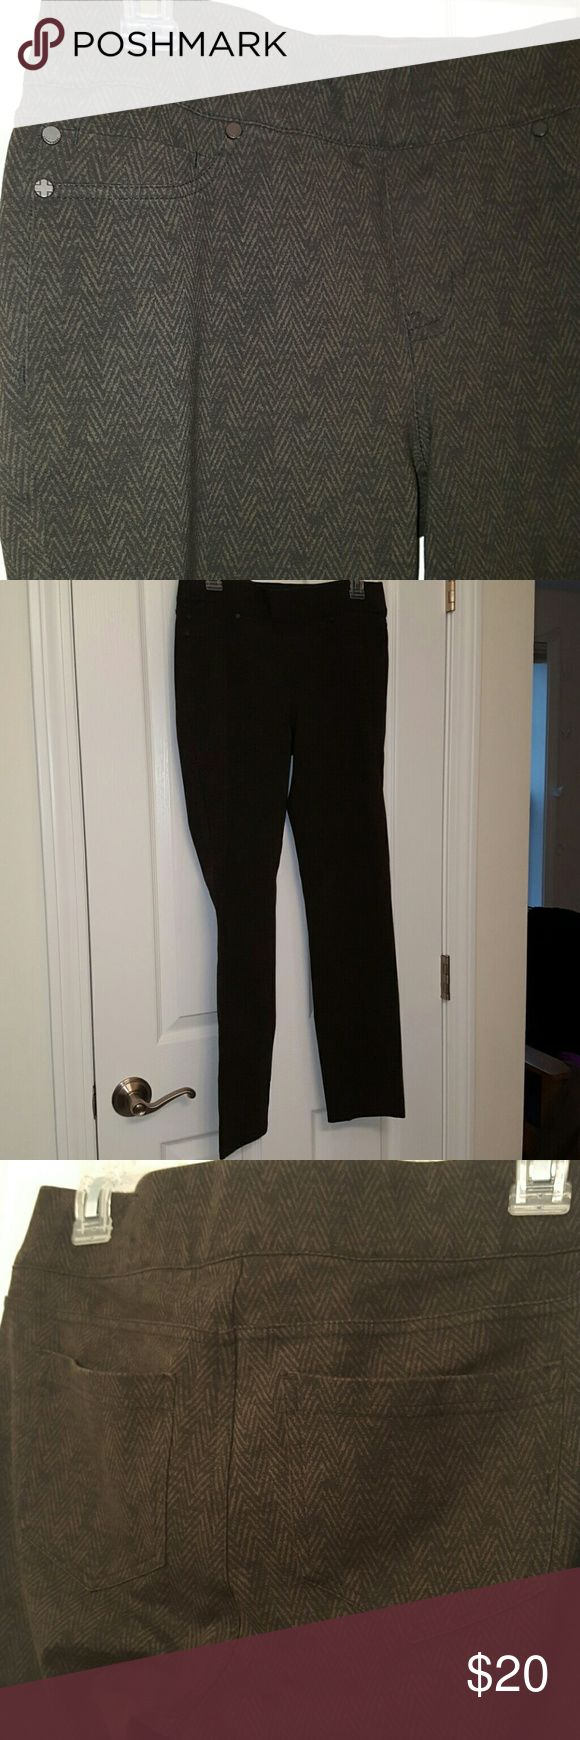 Chevron Pants Used, jegging material,  stretchy Liverpool Jeans Company Pants